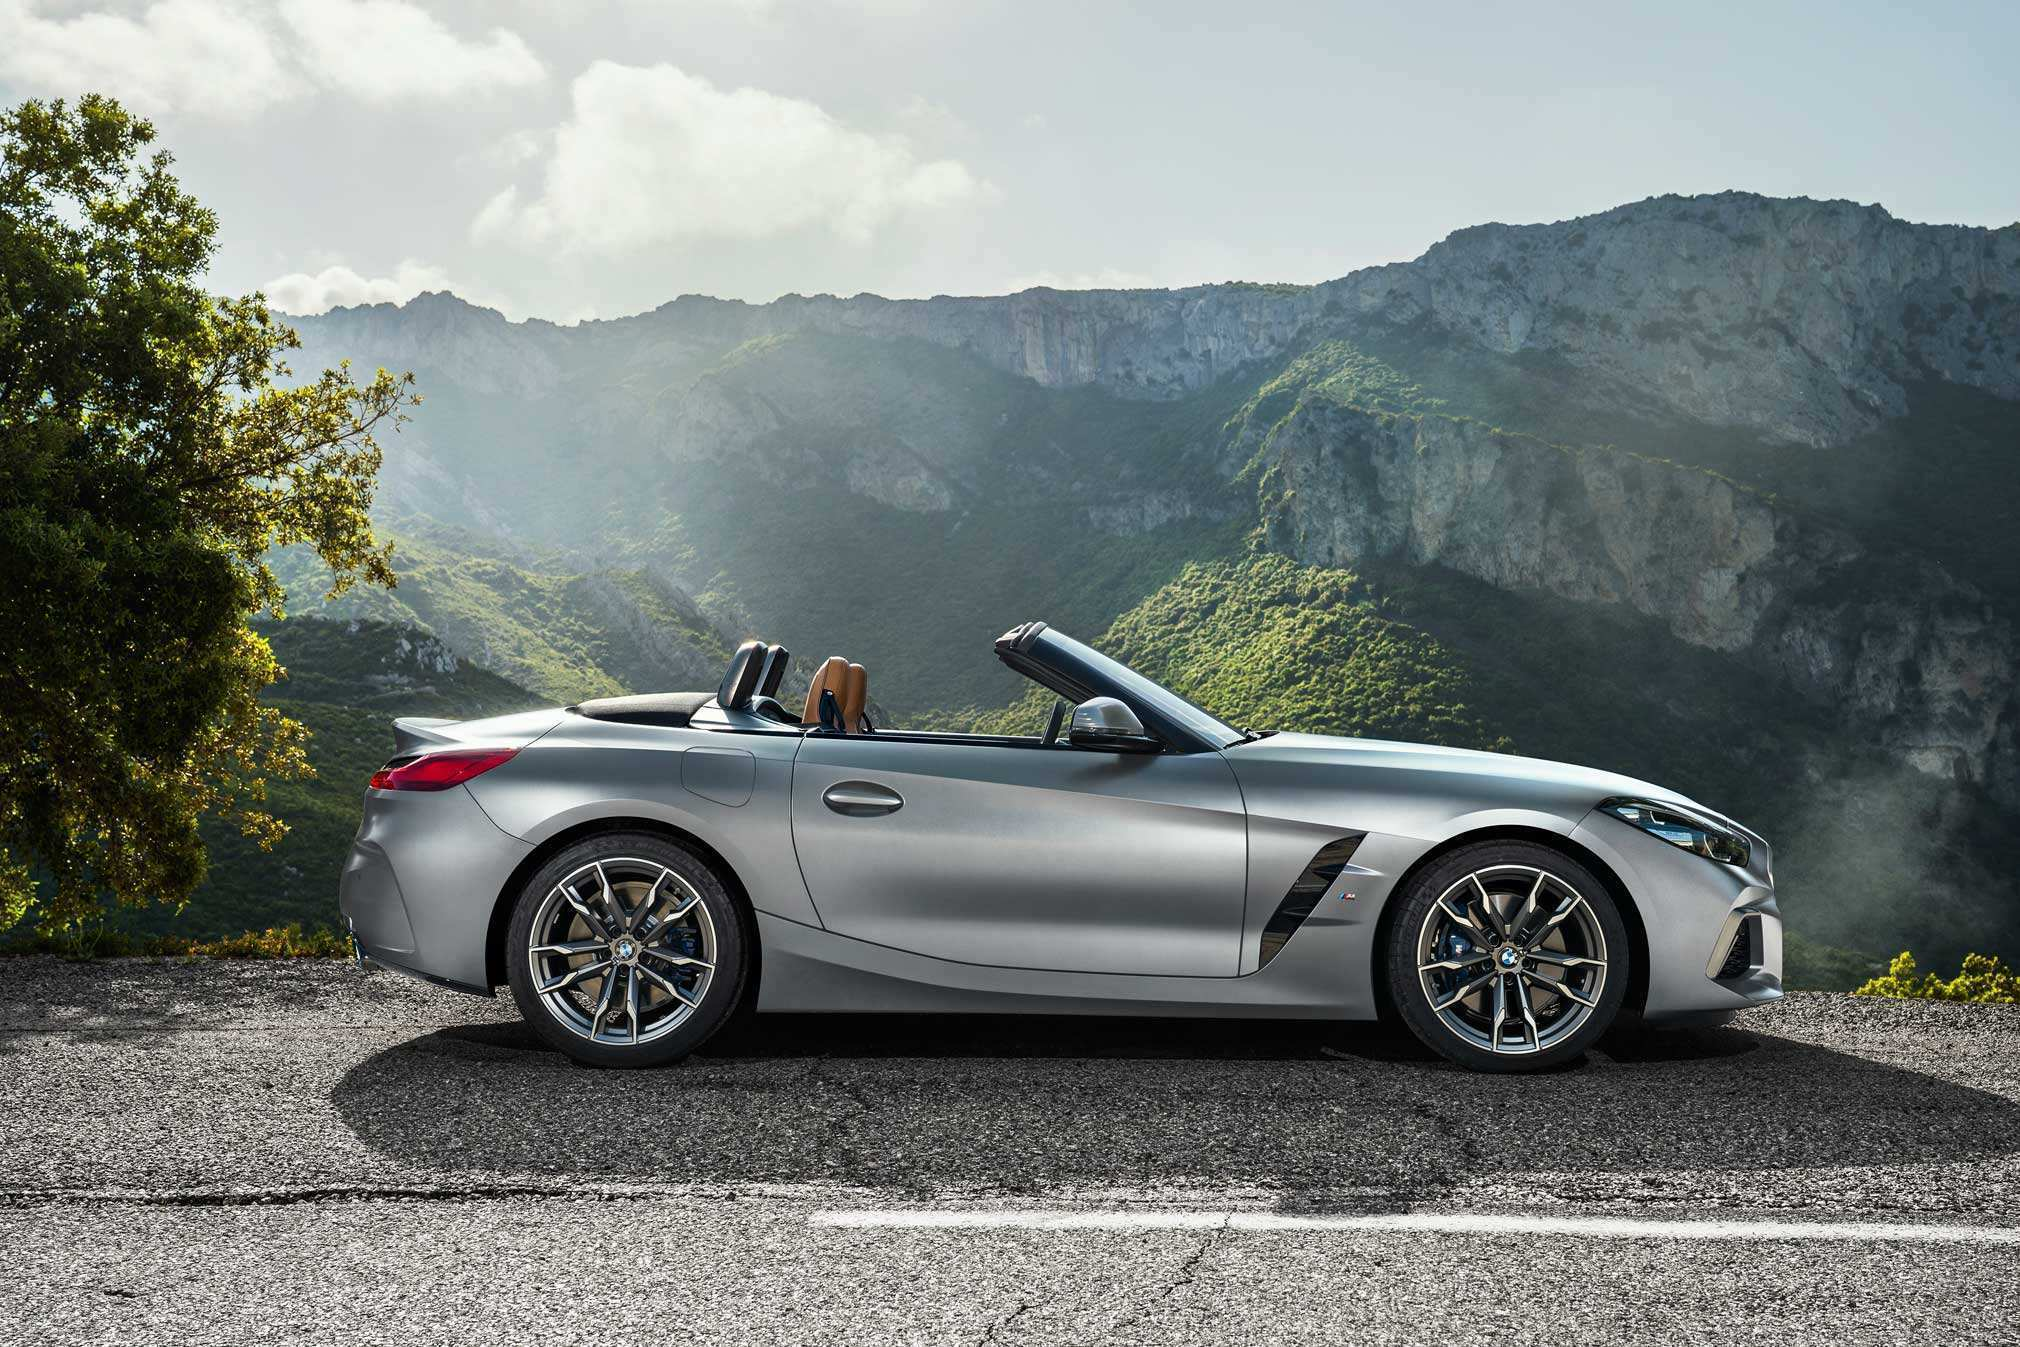 19 New 2019 BMW Z4 Roadster Prices